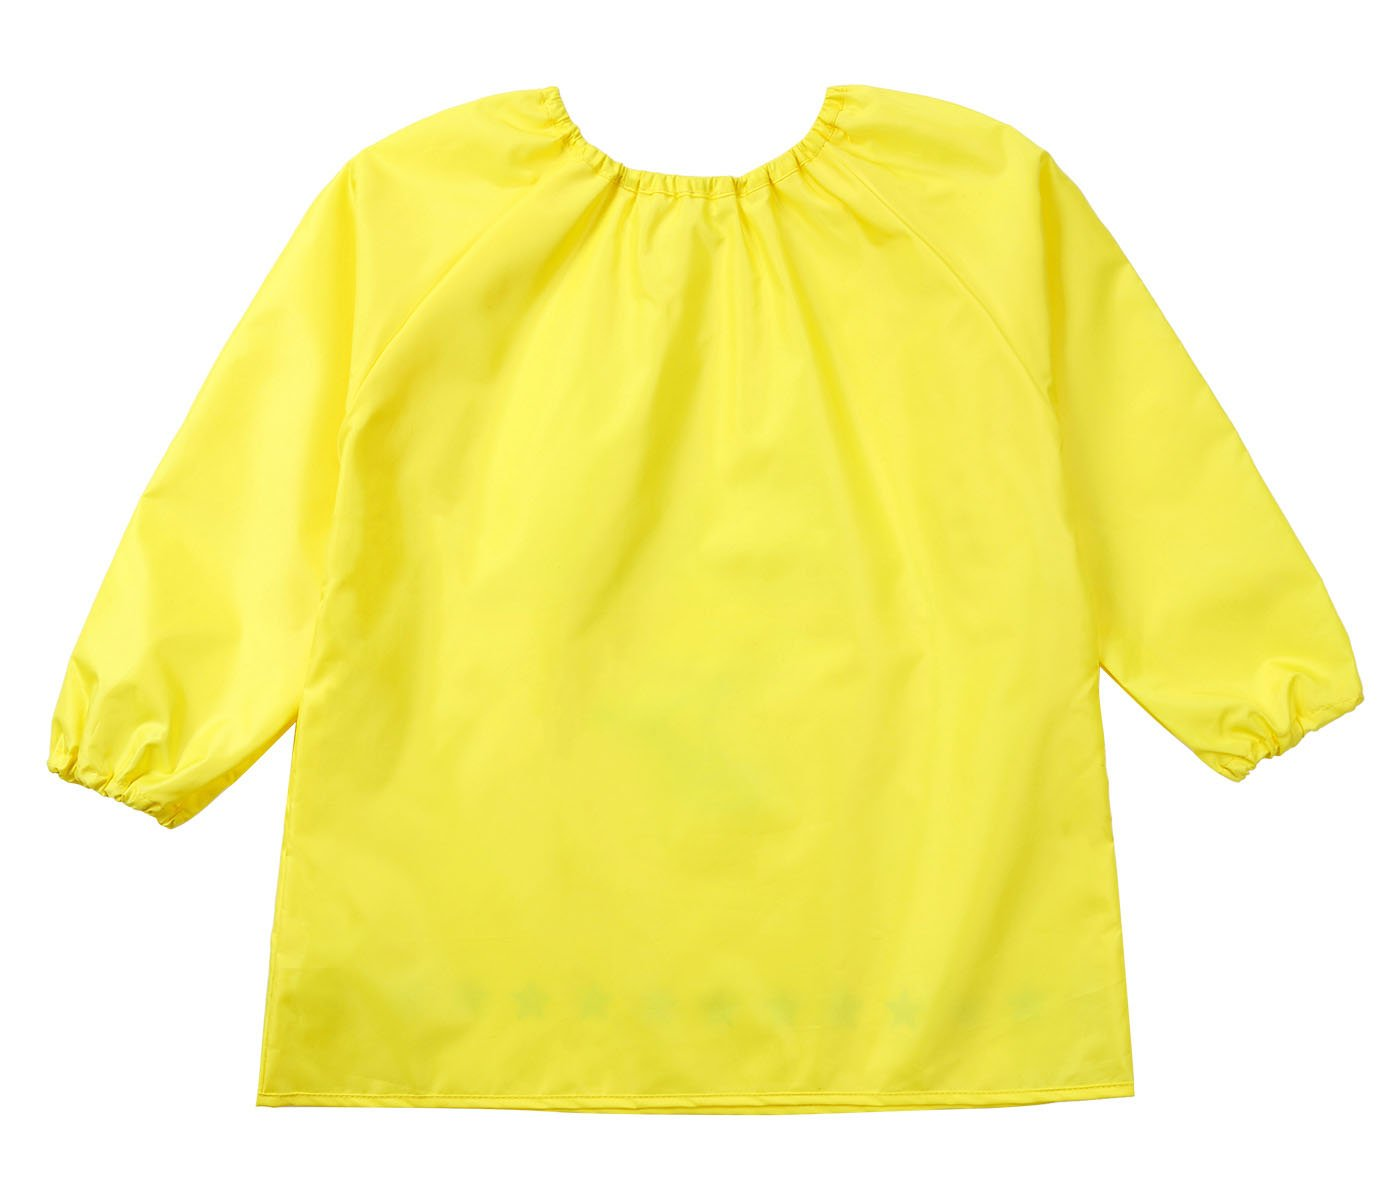 Children's Art Smock Pullover Sleeve Drawing Apron with Packet Plane Pringting Toddler Baby Waterproof Bib Painting with Pockect Yellow 2-4 T DAWNTUNG